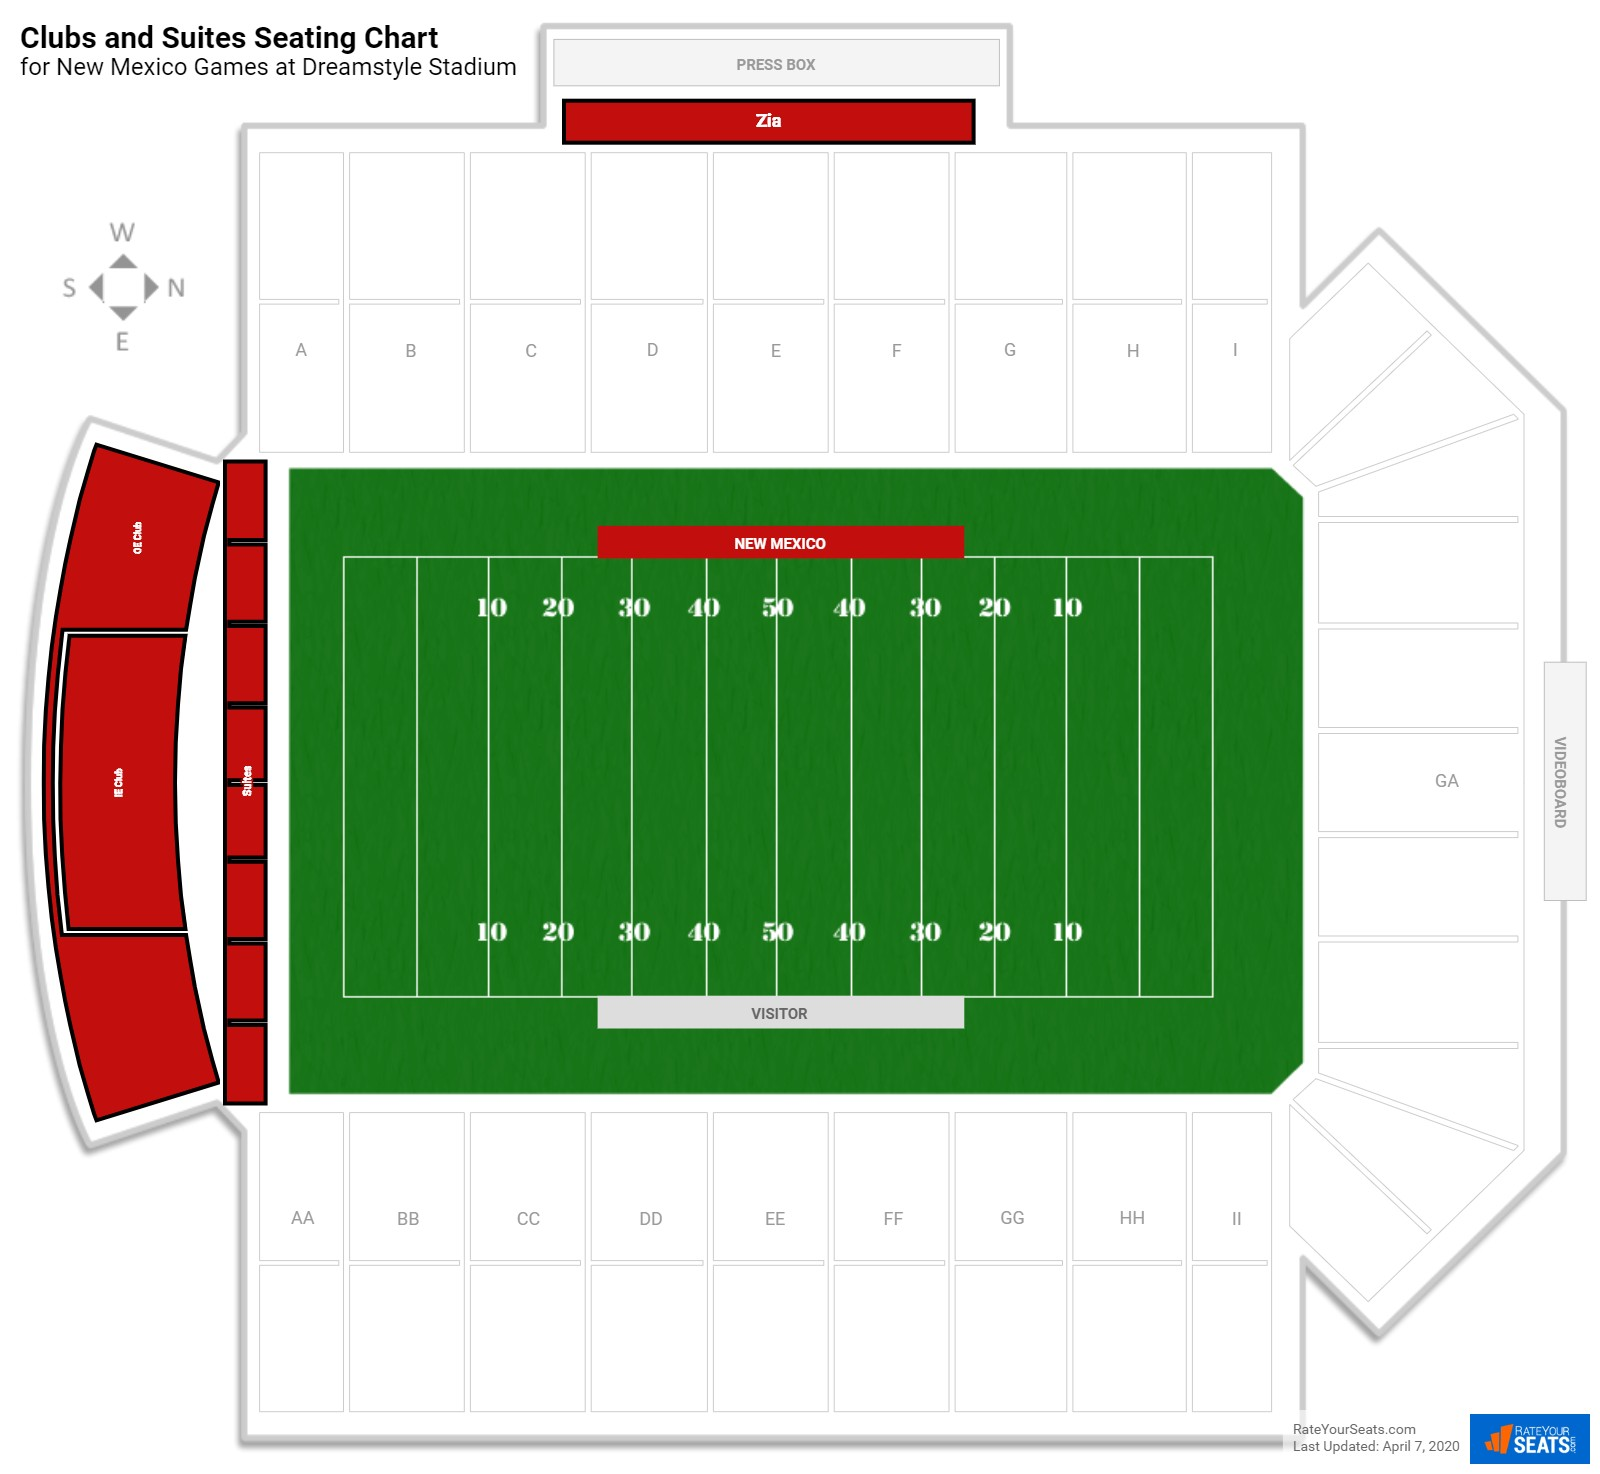 University Stadium Clubs and Suites seating chart